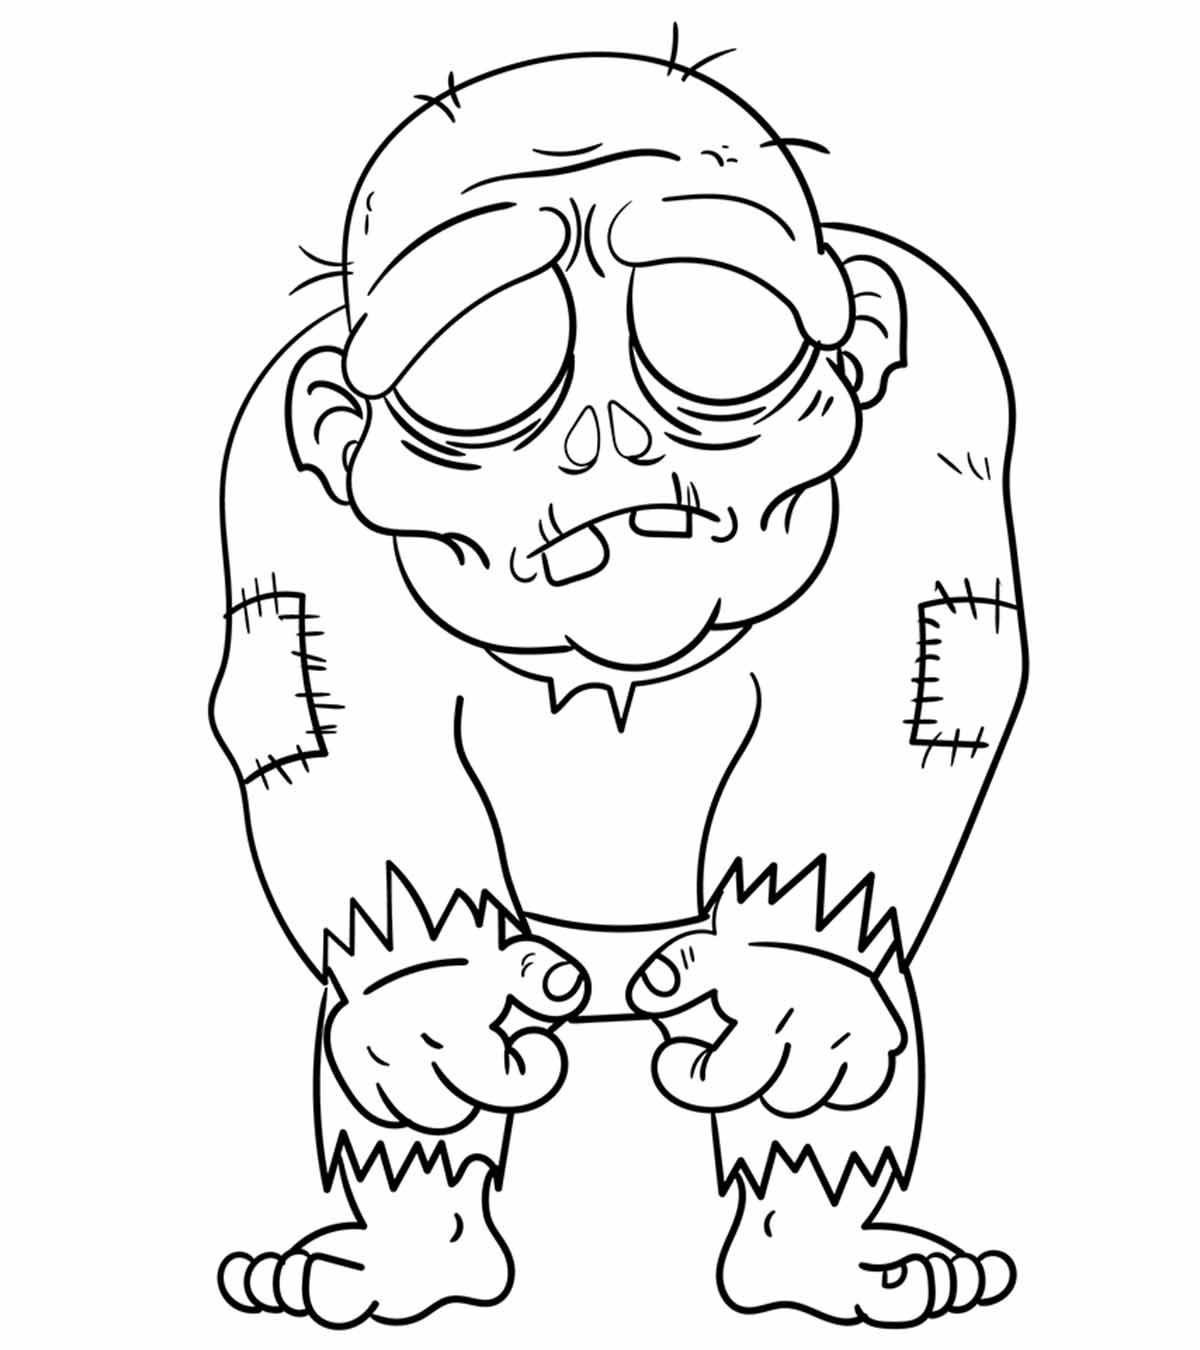 zombie coloring pages sexy zombie coloring page kids play color zombie pages coloring